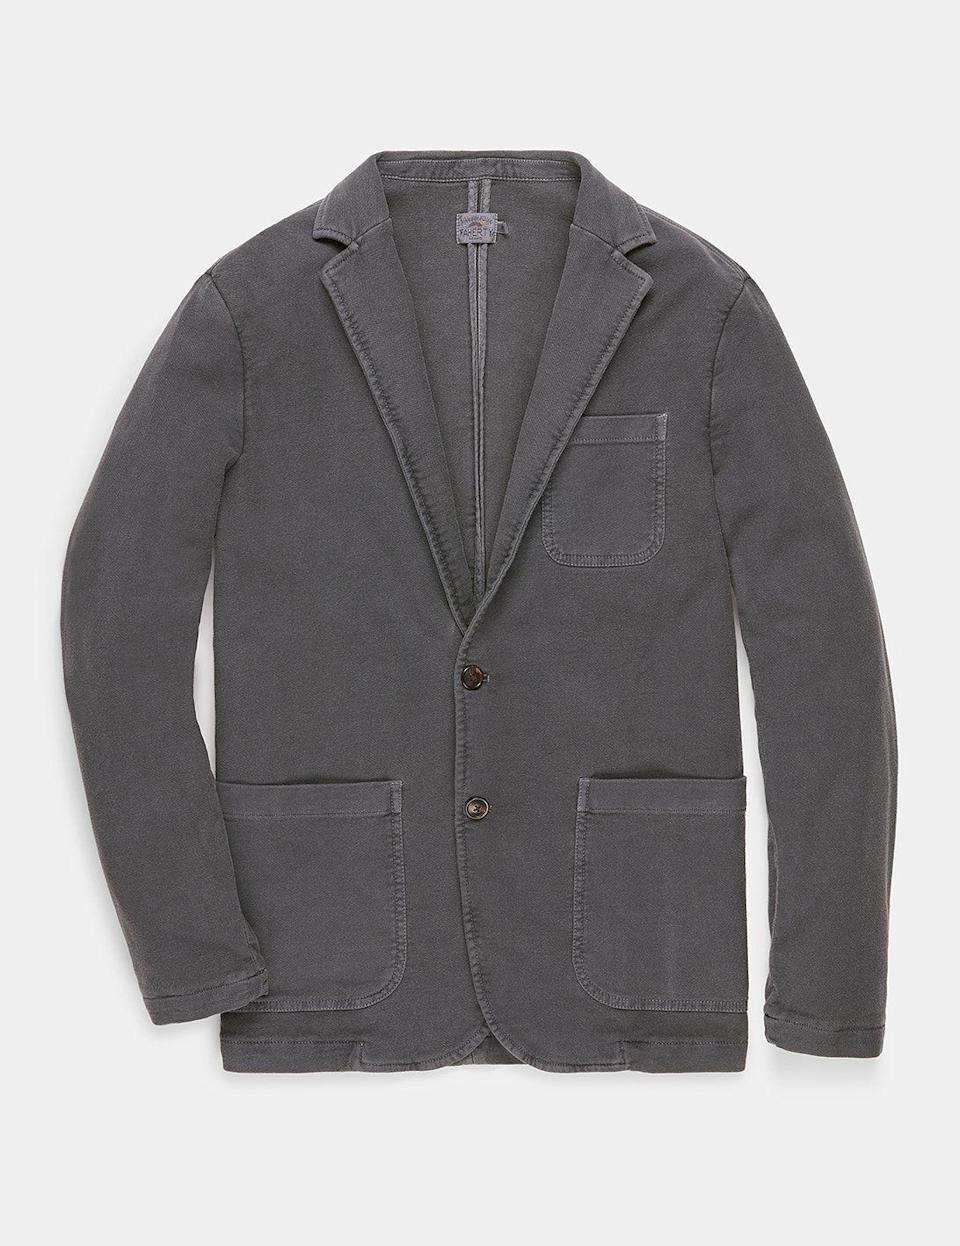 """<p><strong>FAHERTY</strong></p><p>fahertybrand.com</p><p><strong>$198.00</strong></p><p><a href=""""https://go.redirectingat.com?id=74968X1596630&url=https%3A%2F%2Ffahertybrand.com%2Fcollections%2Fmens-new-arrivals%2Fproducts%2Fsoft-flex-knit-blazer-graphite&sref=https%3A%2F%2Fwww.esquire.com%2Fstyle%2Fmens-fashion%2Fg34385982%2Ffall-wardrobe-essentials%2F"""" rel=""""nofollow noopener"""" target=""""_blank"""" data-ylk=""""slk:Shop Now"""" class=""""link rapid-noclick-resp"""">Shop Now</a></p><p>If there was an award for """"blazer for the year,"""" this would be the 2020 winner. This is a slim-fitting sport coat that's made from flex cotton and triple-washed to feel like a sweatshirt. Mind = blown. We're not sure if this should've existed before this year, but now, we couldn't be more thankful that it does. Zoom meeting, adjourned. </p>"""